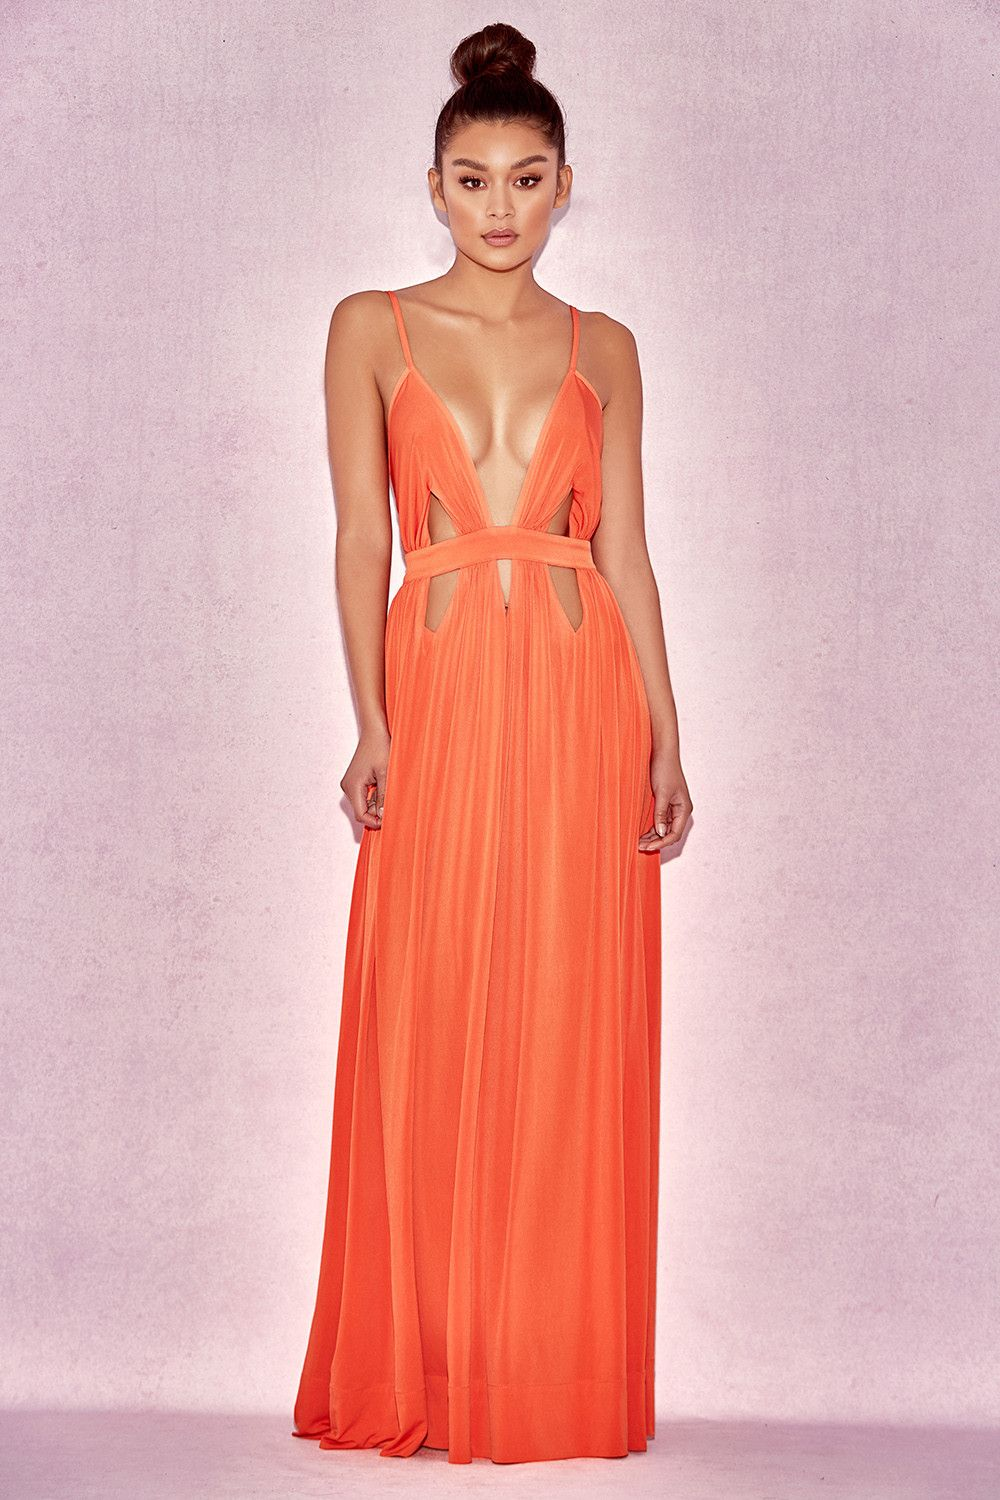 Sexy orange dresses for evening wear for less